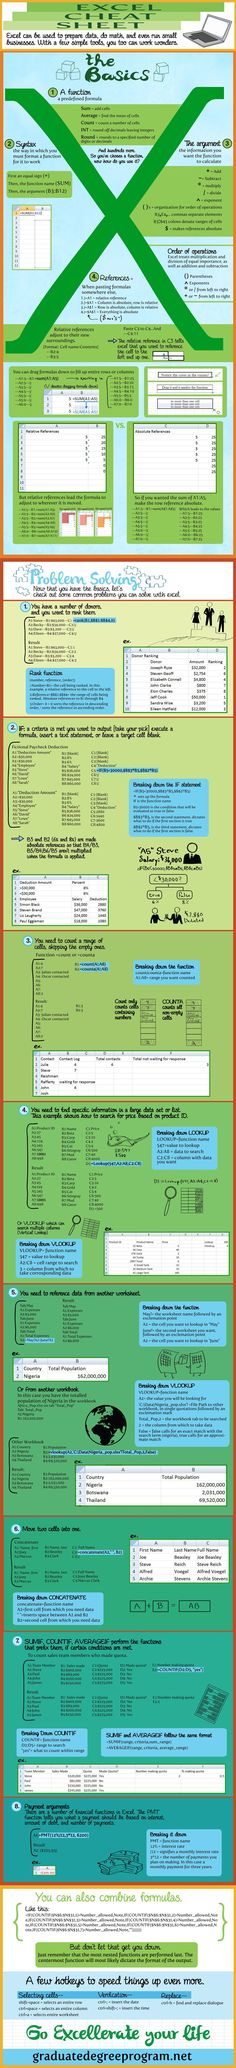 Ediblewildsus  Sweet Microsoft Excel Microsoft And Cheat Sheets On Pinterest With Remarkable Excel Cheat Httpgraduatedegreeprogramnetexcelcheats With Cool Excel Copy Down Also Excel Loan Amortization Template In Addition Adding Times In Excel And How To Add Drop Down List In Excel  As Well As Making Line Graphs In Excel Additionally Shade Every Other Row In Excel From Pinterestcom With Ediblewildsus  Remarkable Microsoft Excel Microsoft And Cheat Sheets On Pinterest With Cool Excel Cheat Httpgraduatedegreeprogramnetexcelcheats And Sweet Excel Copy Down Also Excel Loan Amortization Template In Addition Adding Times In Excel From Pinterestcom